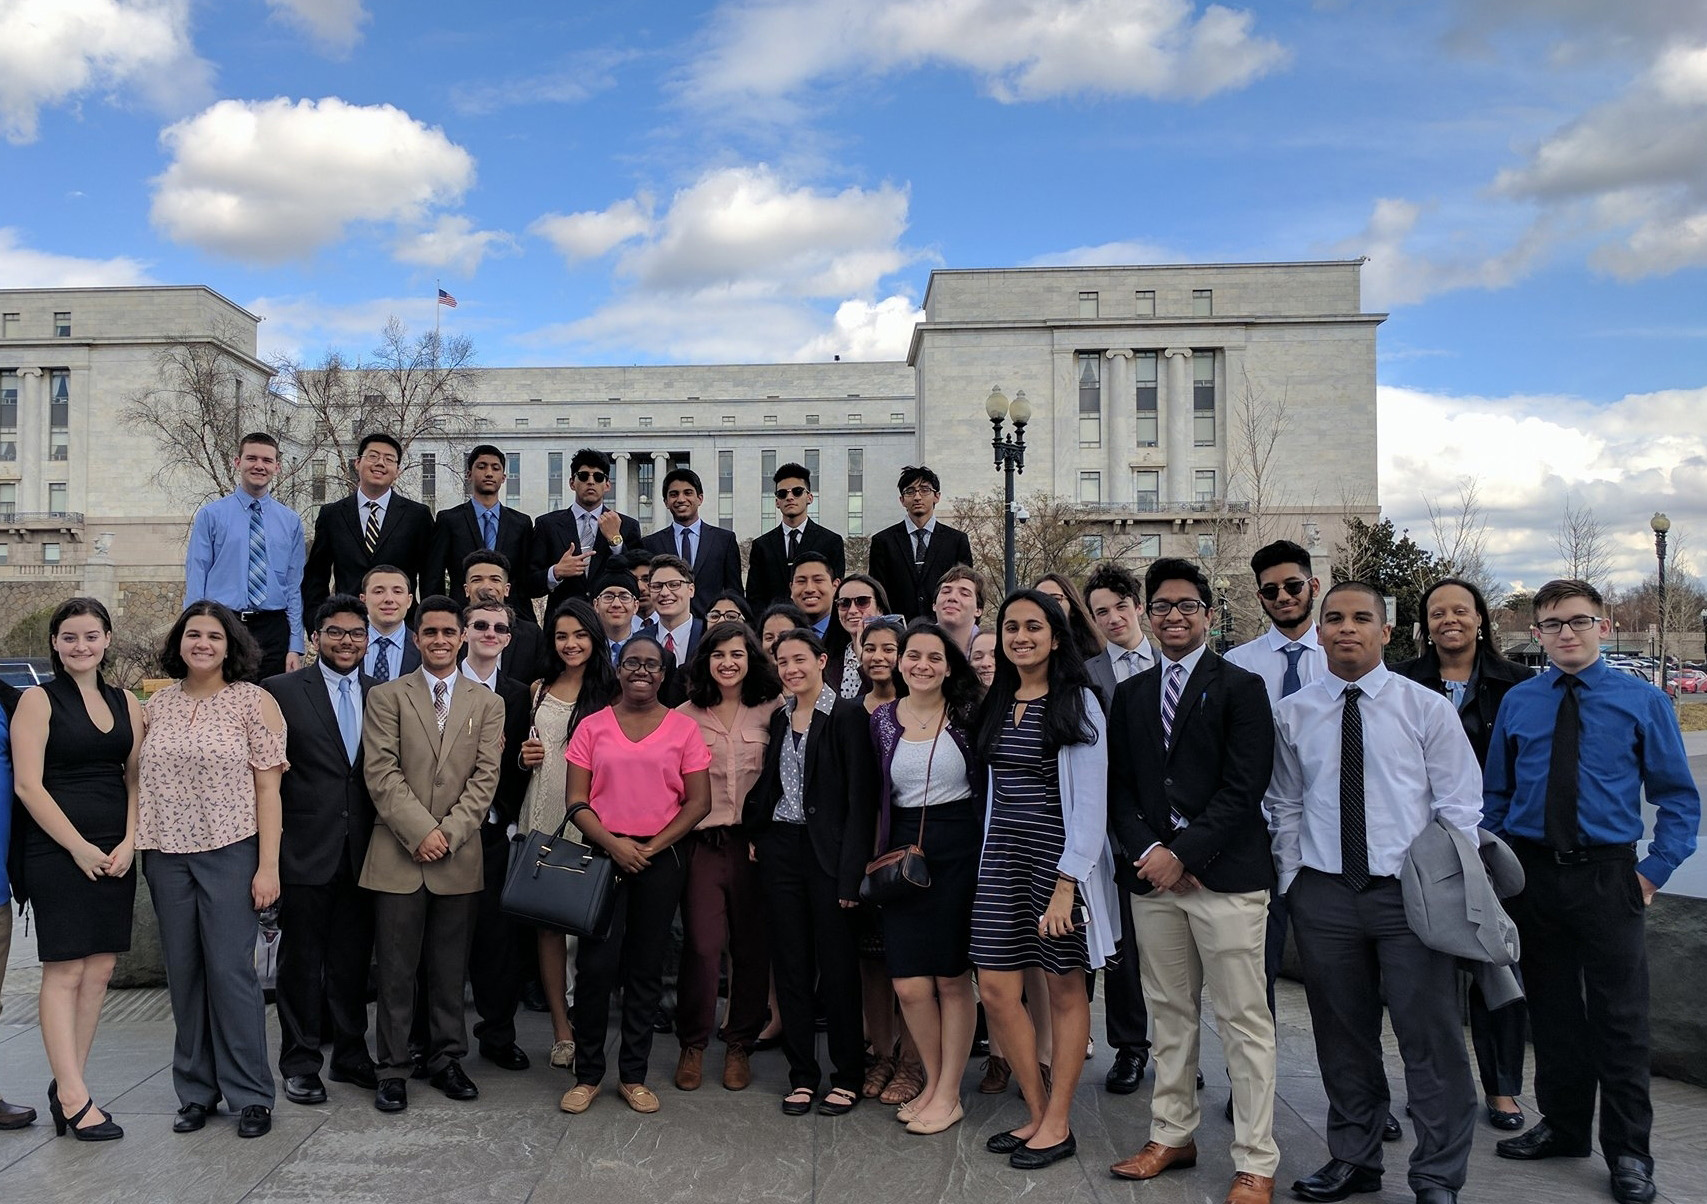 Students from Hightstown High School in New Jersey visit Washington, DC, to advocate for their bill.